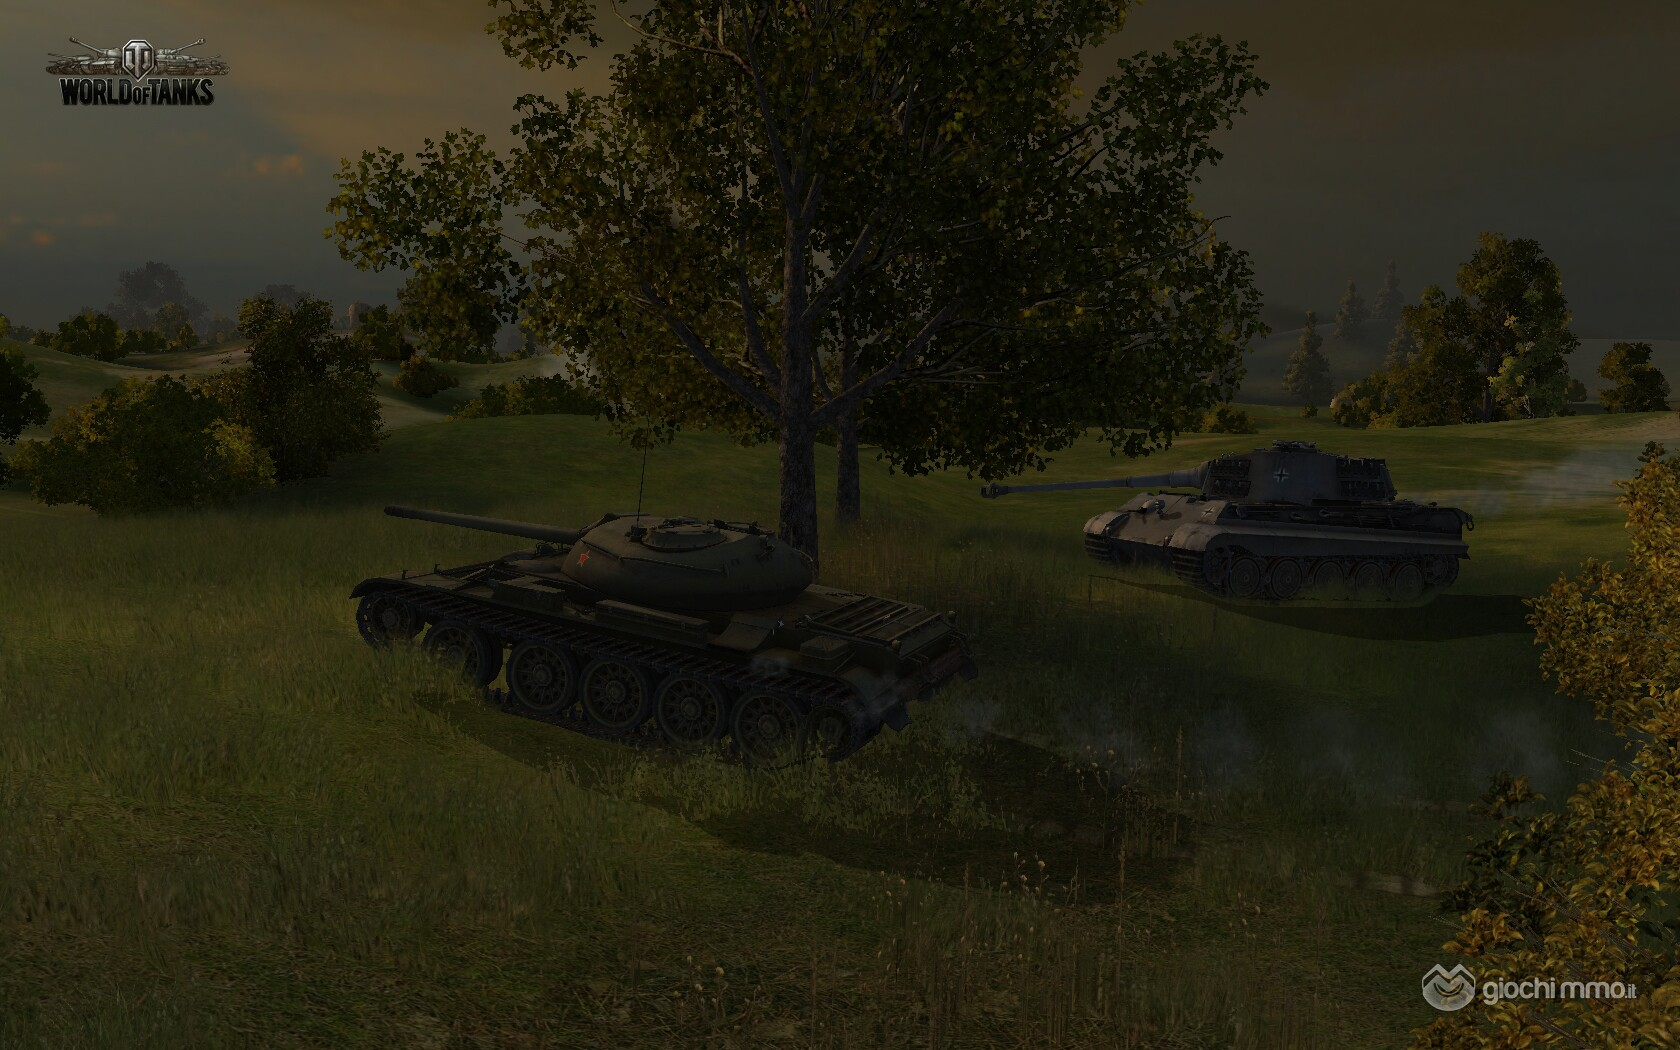 Clicca sull'immagine per ingrandirlaNome:   World of Tanks screen1.jpgVisite: 85Dimensione:   393.0 KBID: 8209